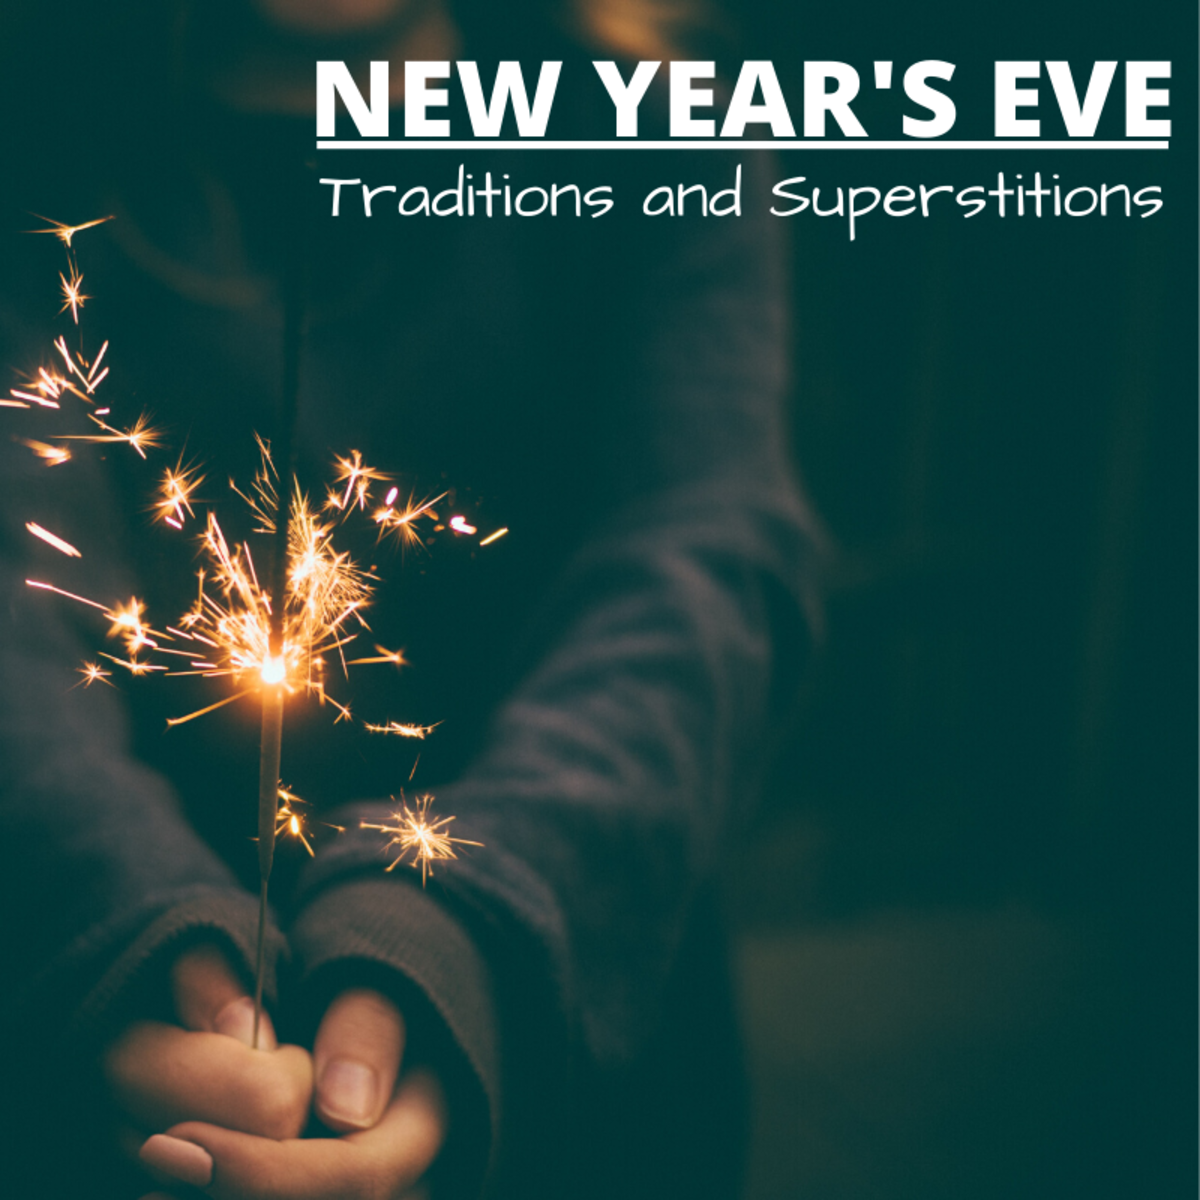 There are plenty of unique traditions and superstitious beliefs surrounding New Year's Eve and Day. Which ones do you observe?